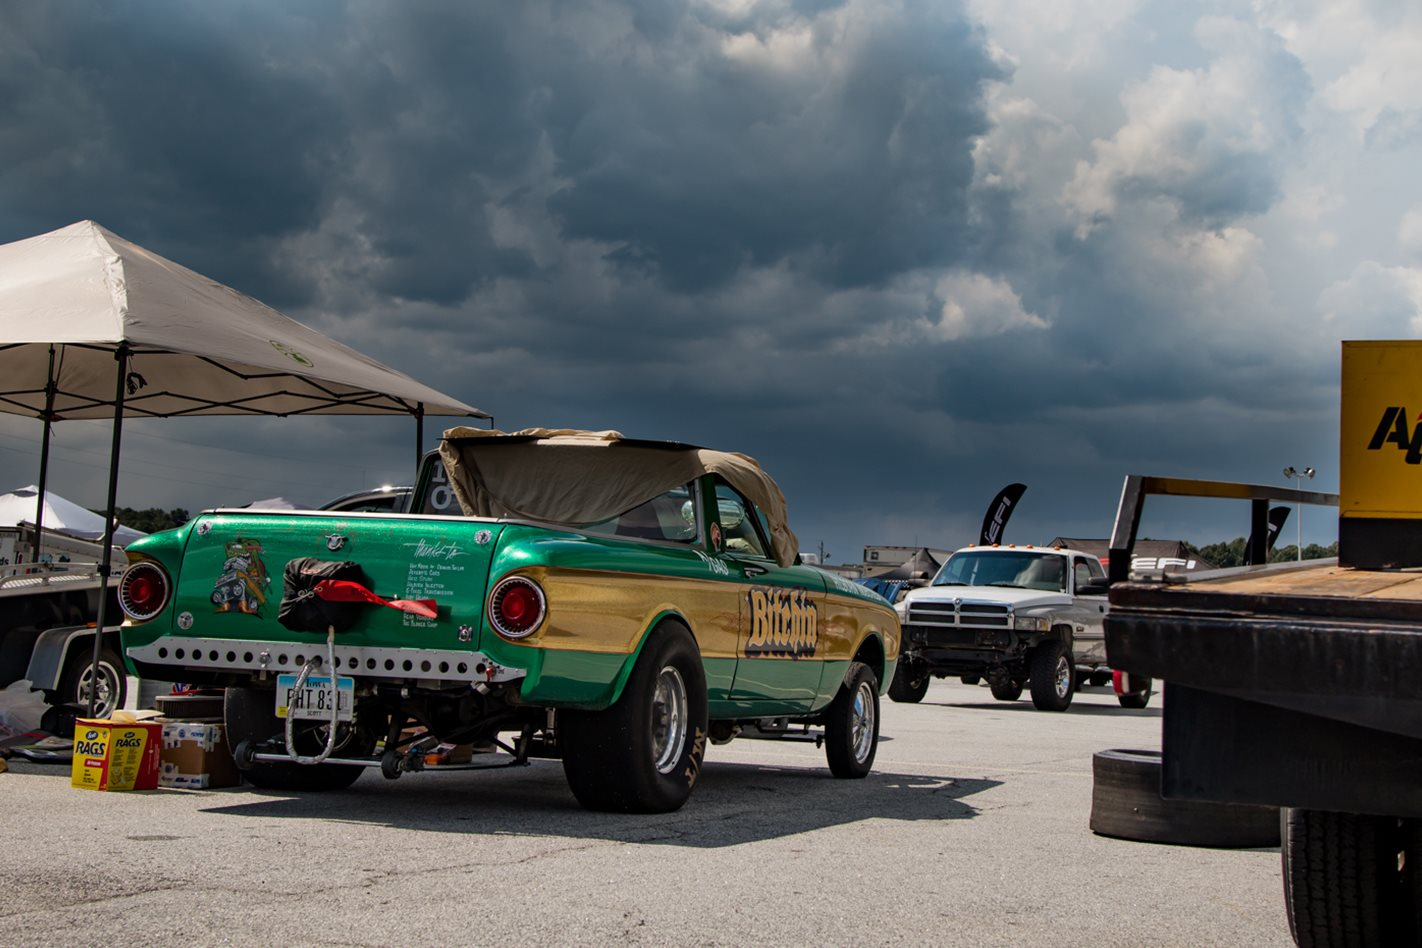 Jarrad Scott's blown Hemi-powered 1962 Ford Ranchero gasser